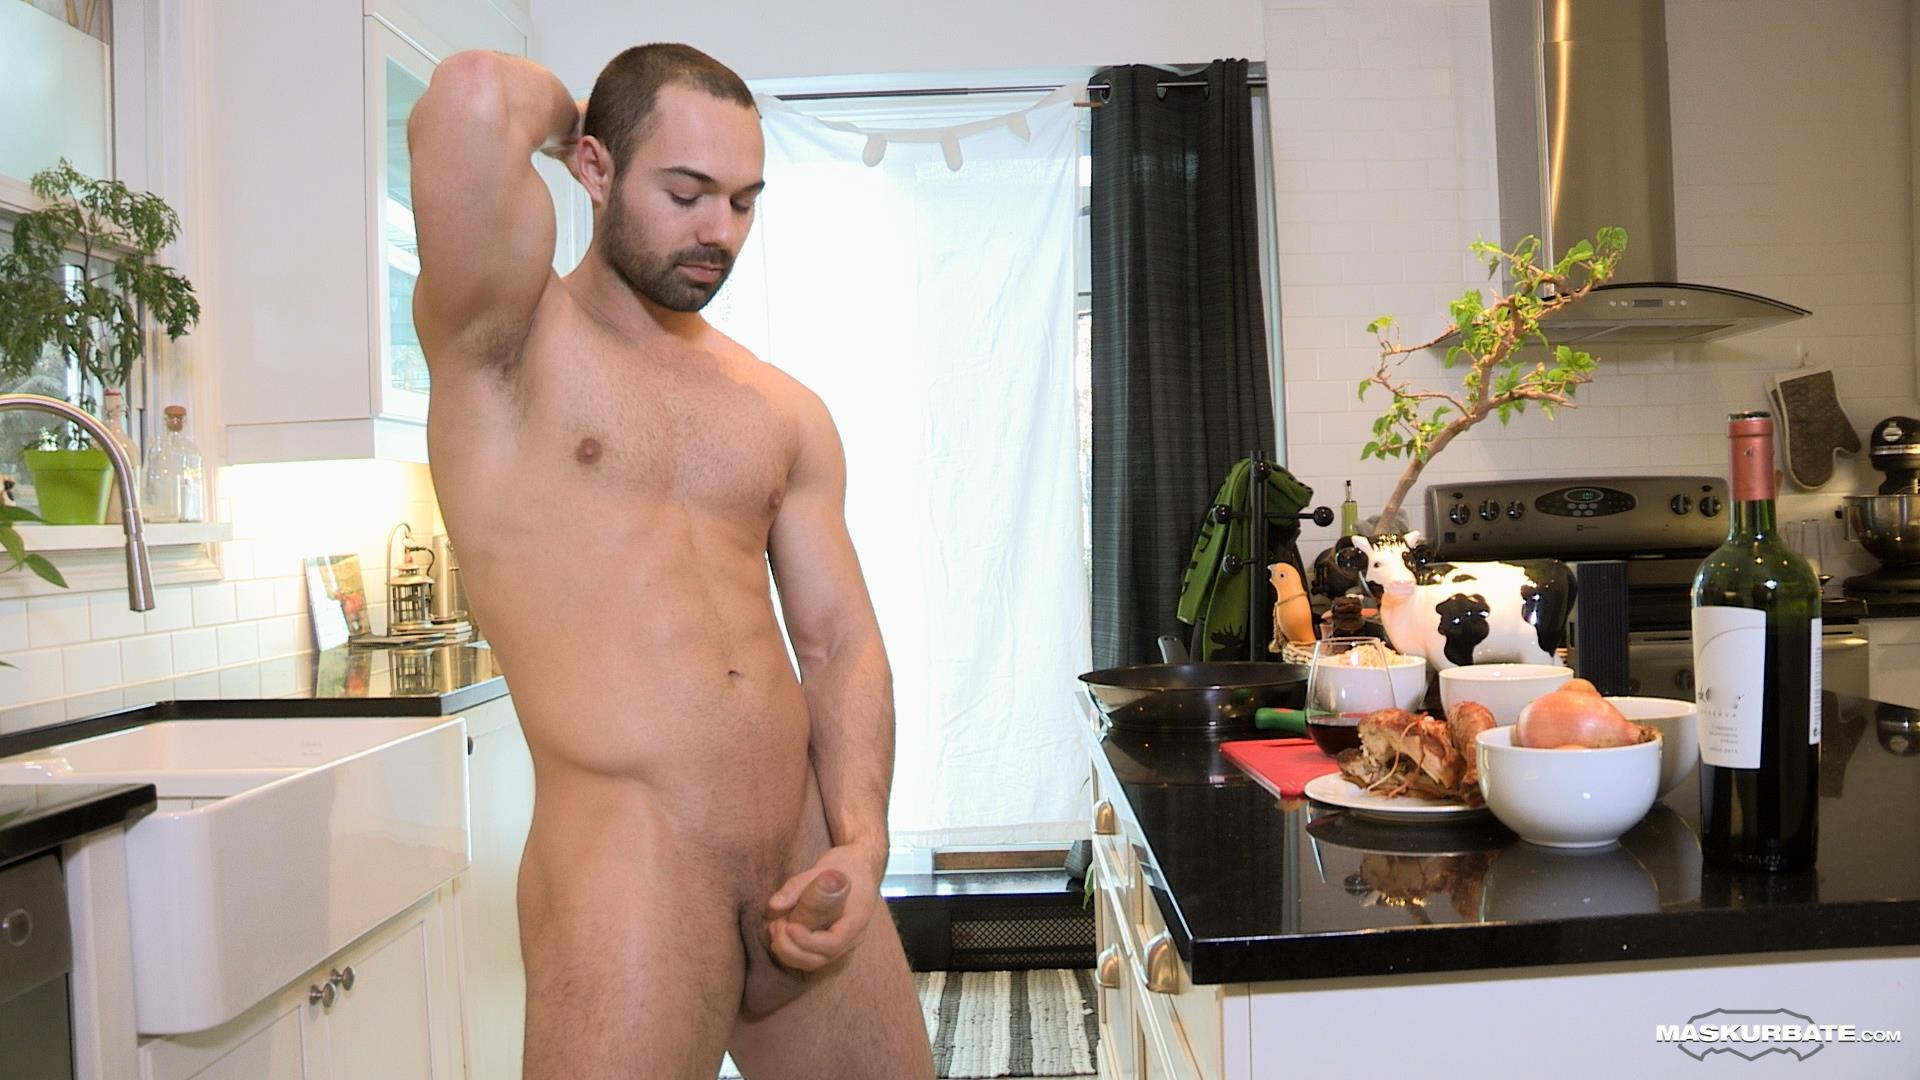 Maskurbate Muscle Hunk With A Big Uncut Cock Jerking Off Amateur Gay Porn 04 The Naked Chef Jerks His Big Uncut Cock In The Kitchen